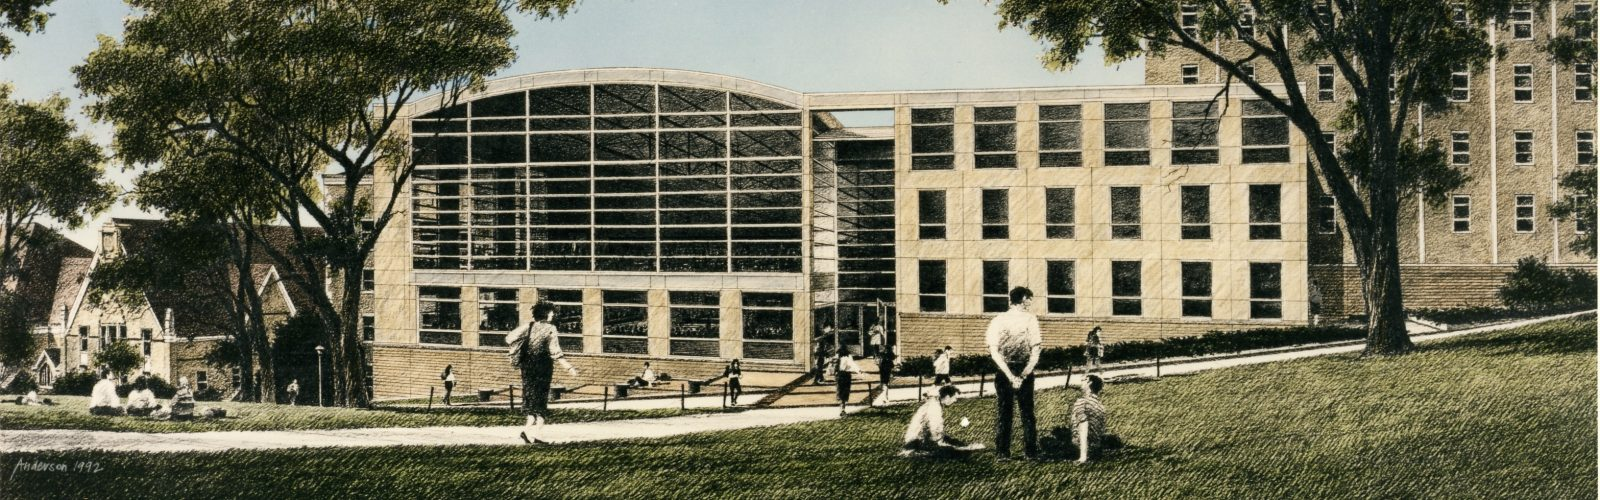 A new Law Building, as seen in this exterior plan, was proposed in the mid-1990s.